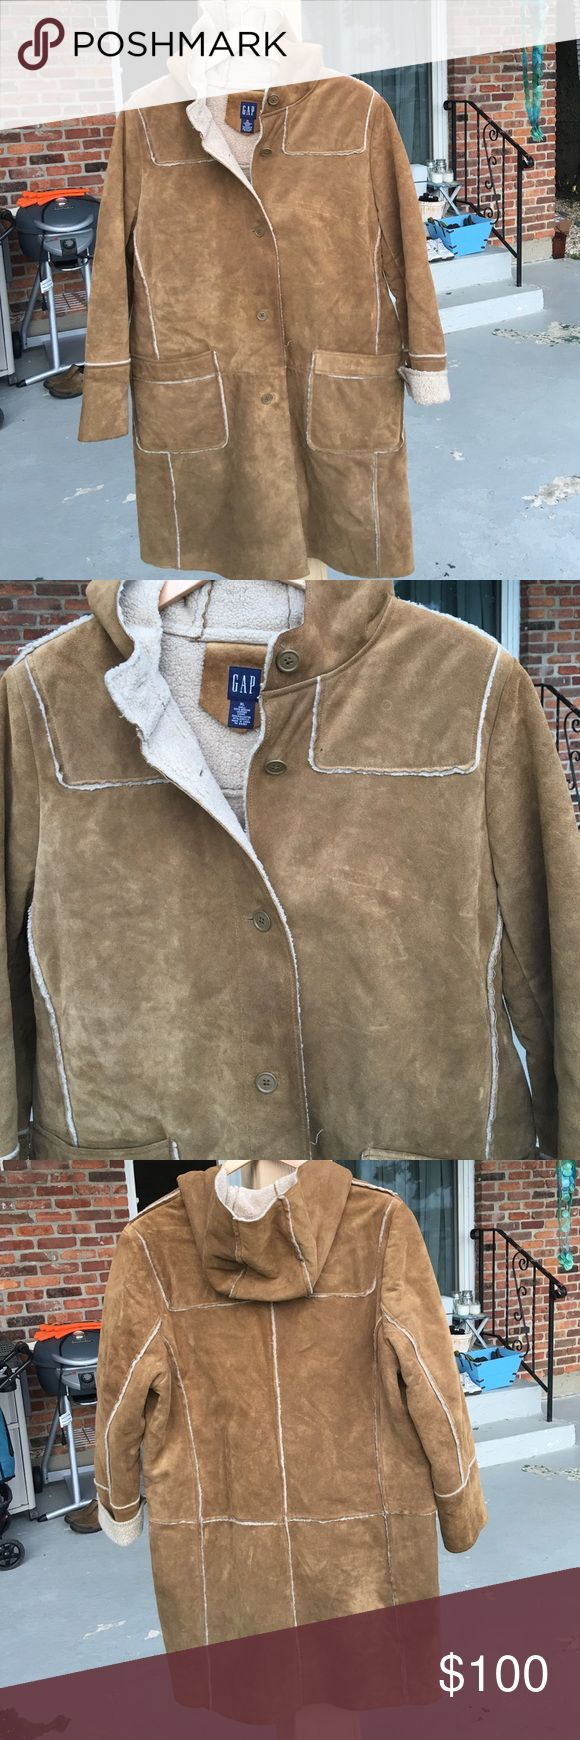 GAP coat XL worn few times. 100% leather, suede shearling look. She'll is 100%leather and lining is 53% polyester 47% Acrylic. Worn but in great condition. GAP Jackets & Coats